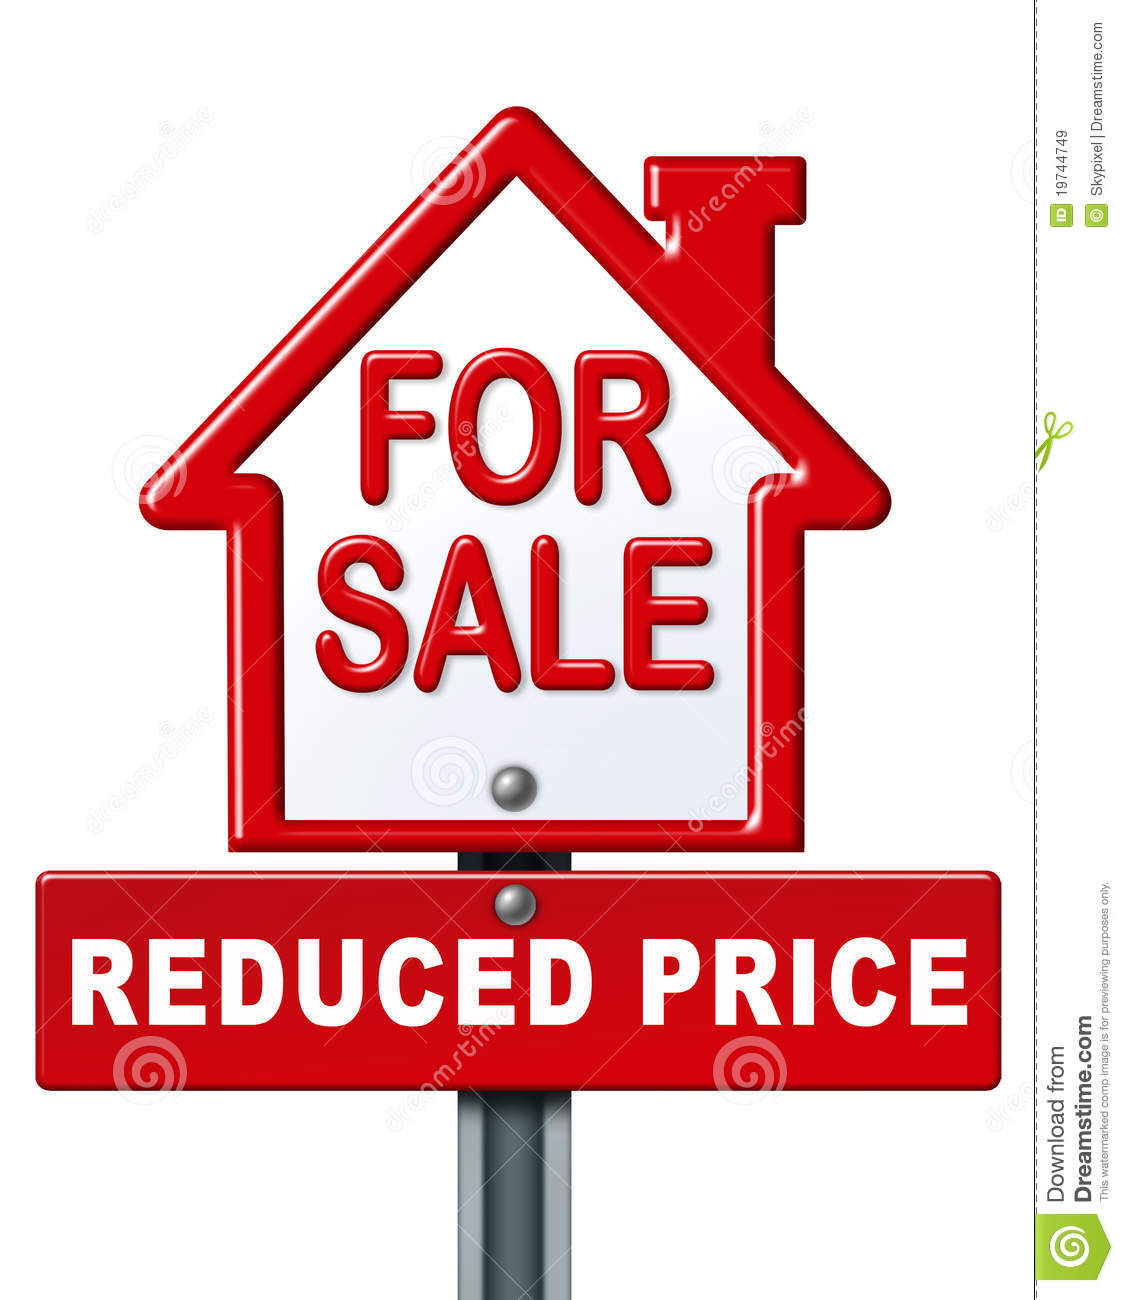 Home sale reduced price sign royalty free stock images for On the property sale prices